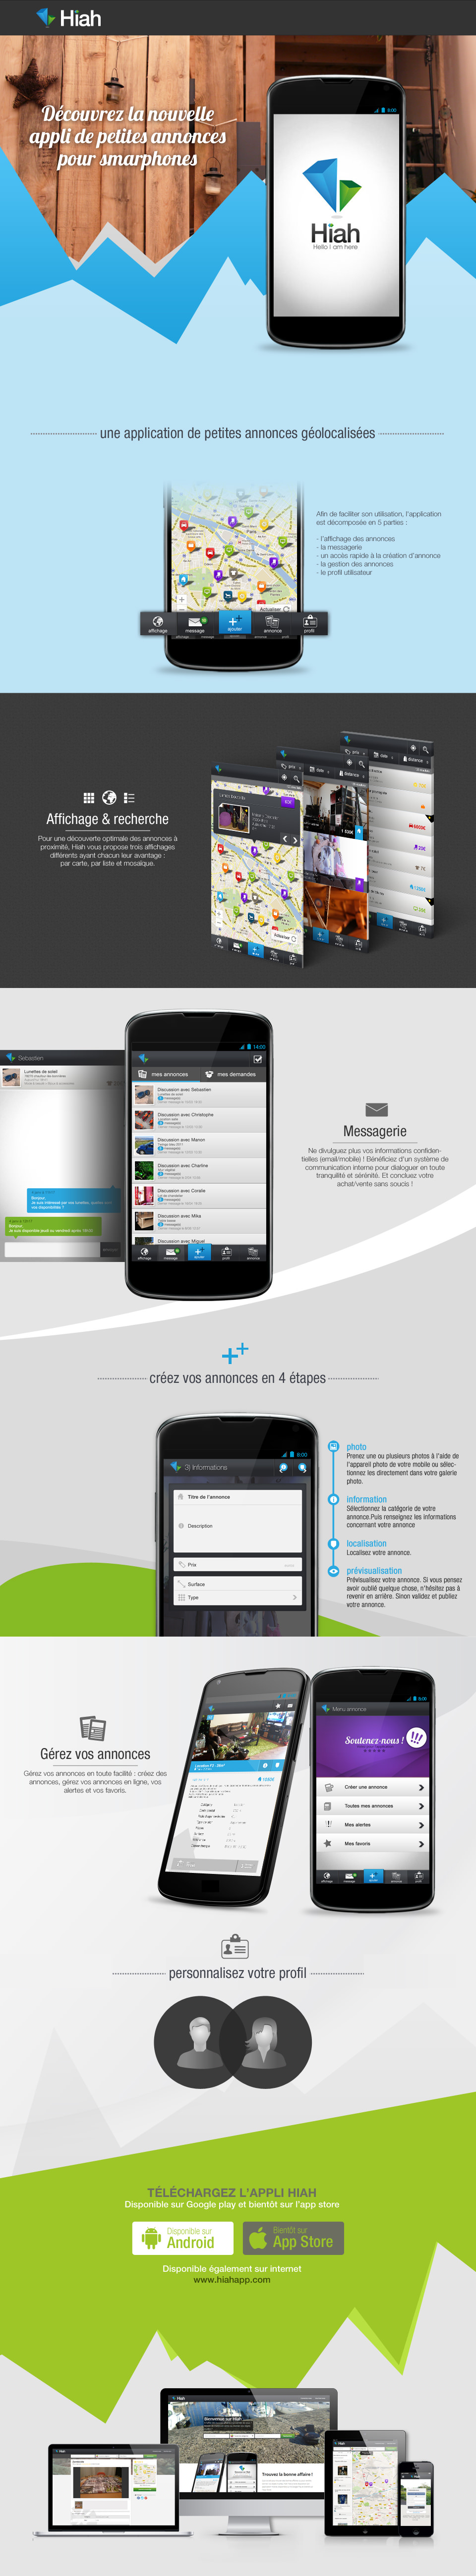 Hiah - Application mobile/web